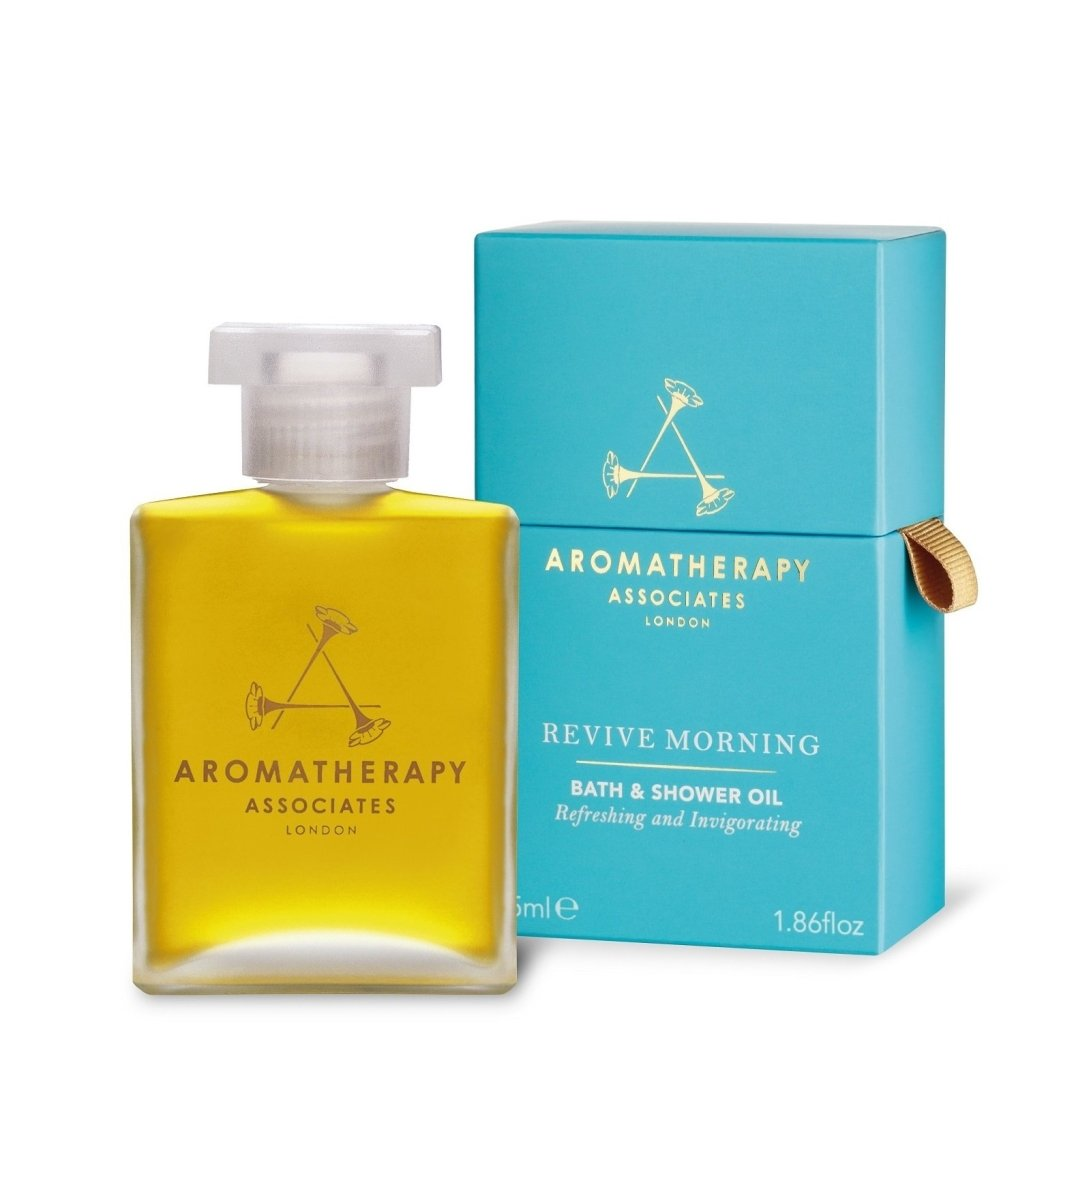 AROMATHERAPY ASSOCIATES Revive Morning Bath and Shower Oil [55ml] - MINT Organics